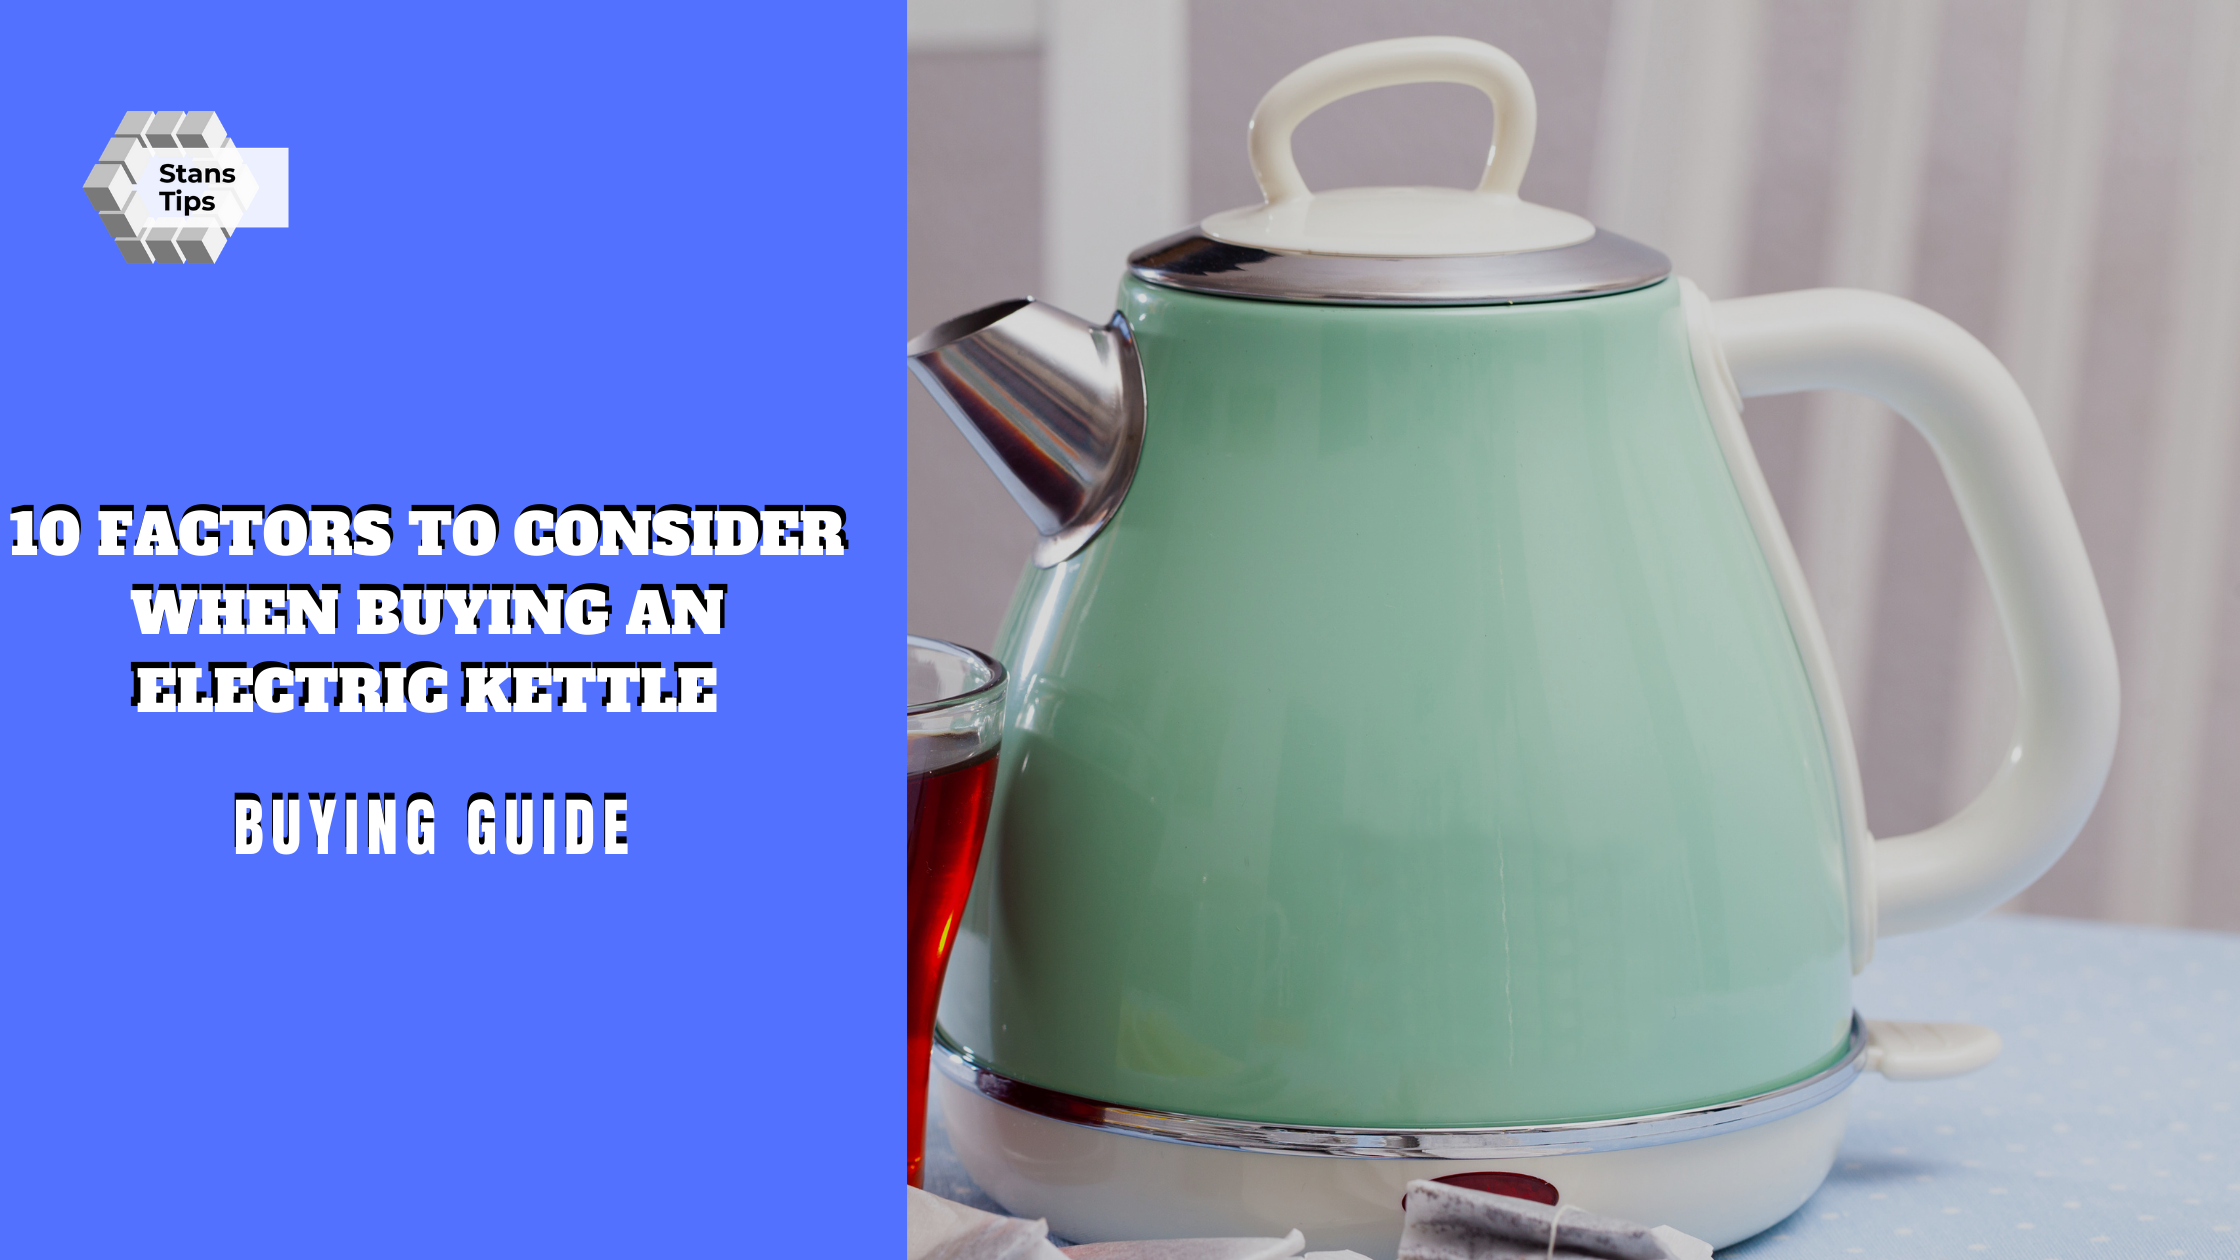 10 factors to consider when buying an electric kettle